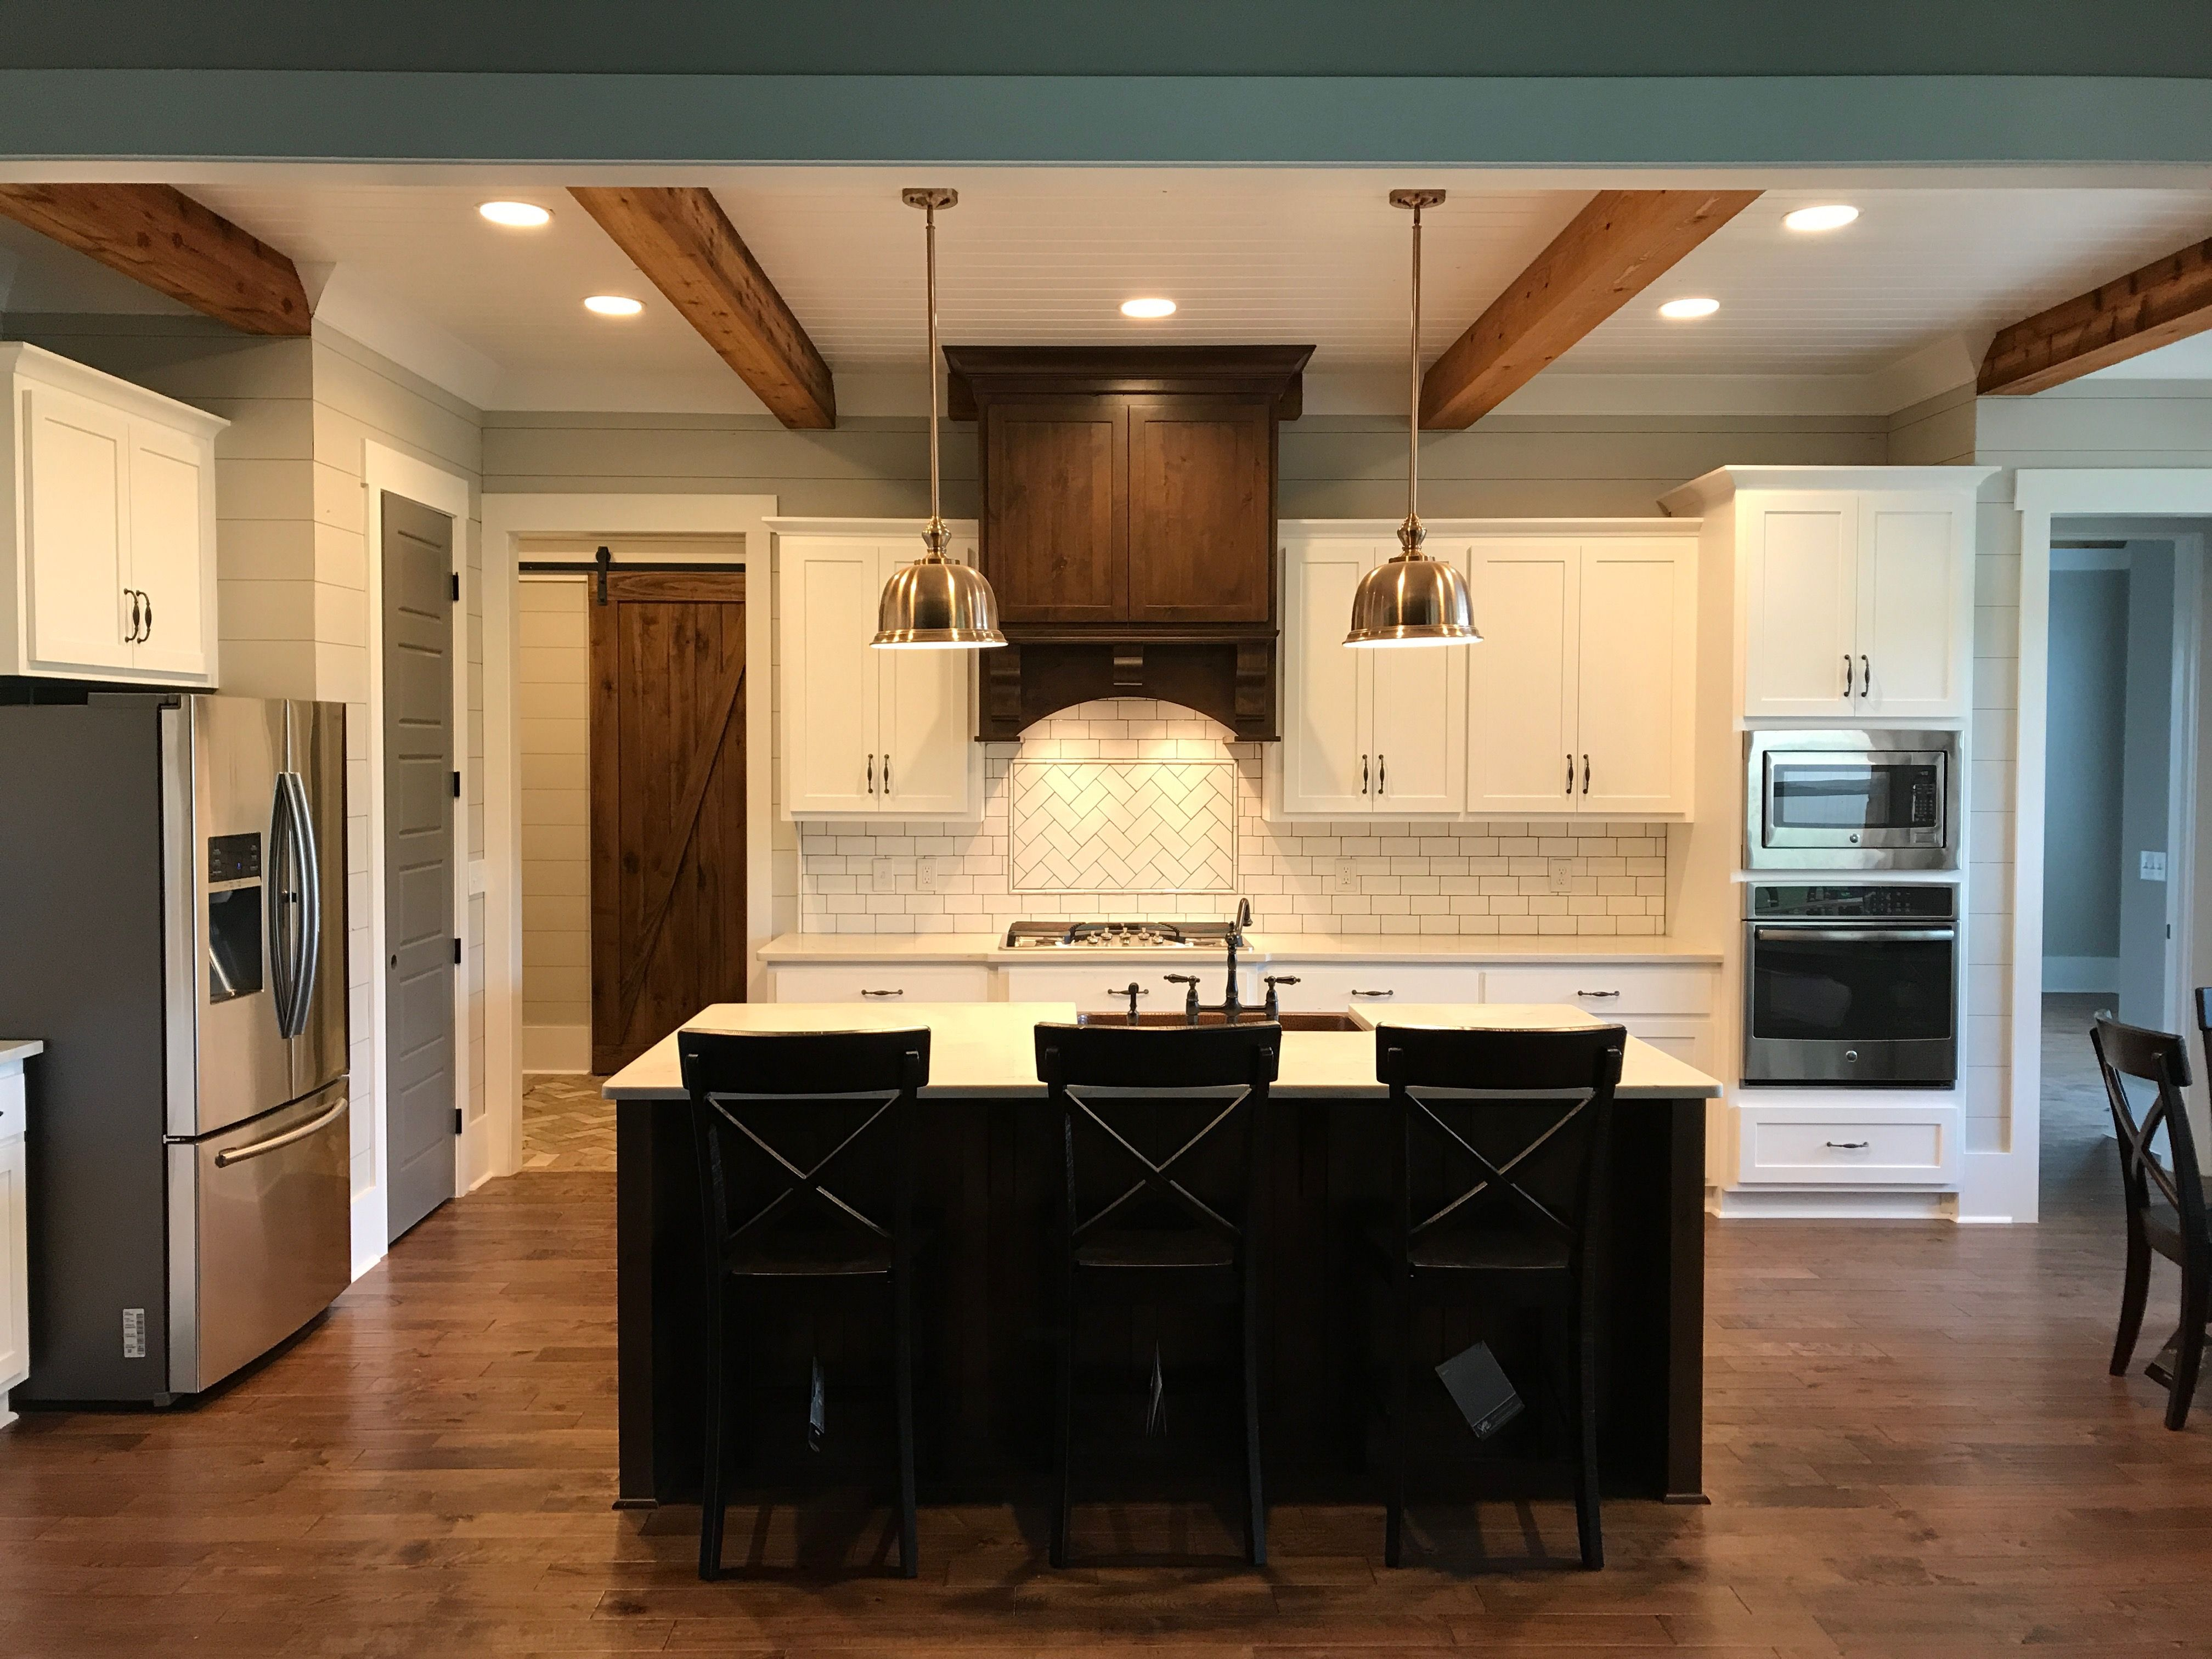 Our Kitchen White Shaker Cabinets With Stained Hood And Island Quartz Countertops Under Copper Pendants Pai Kitchen Design Birch Cabinets Staining Cabinets